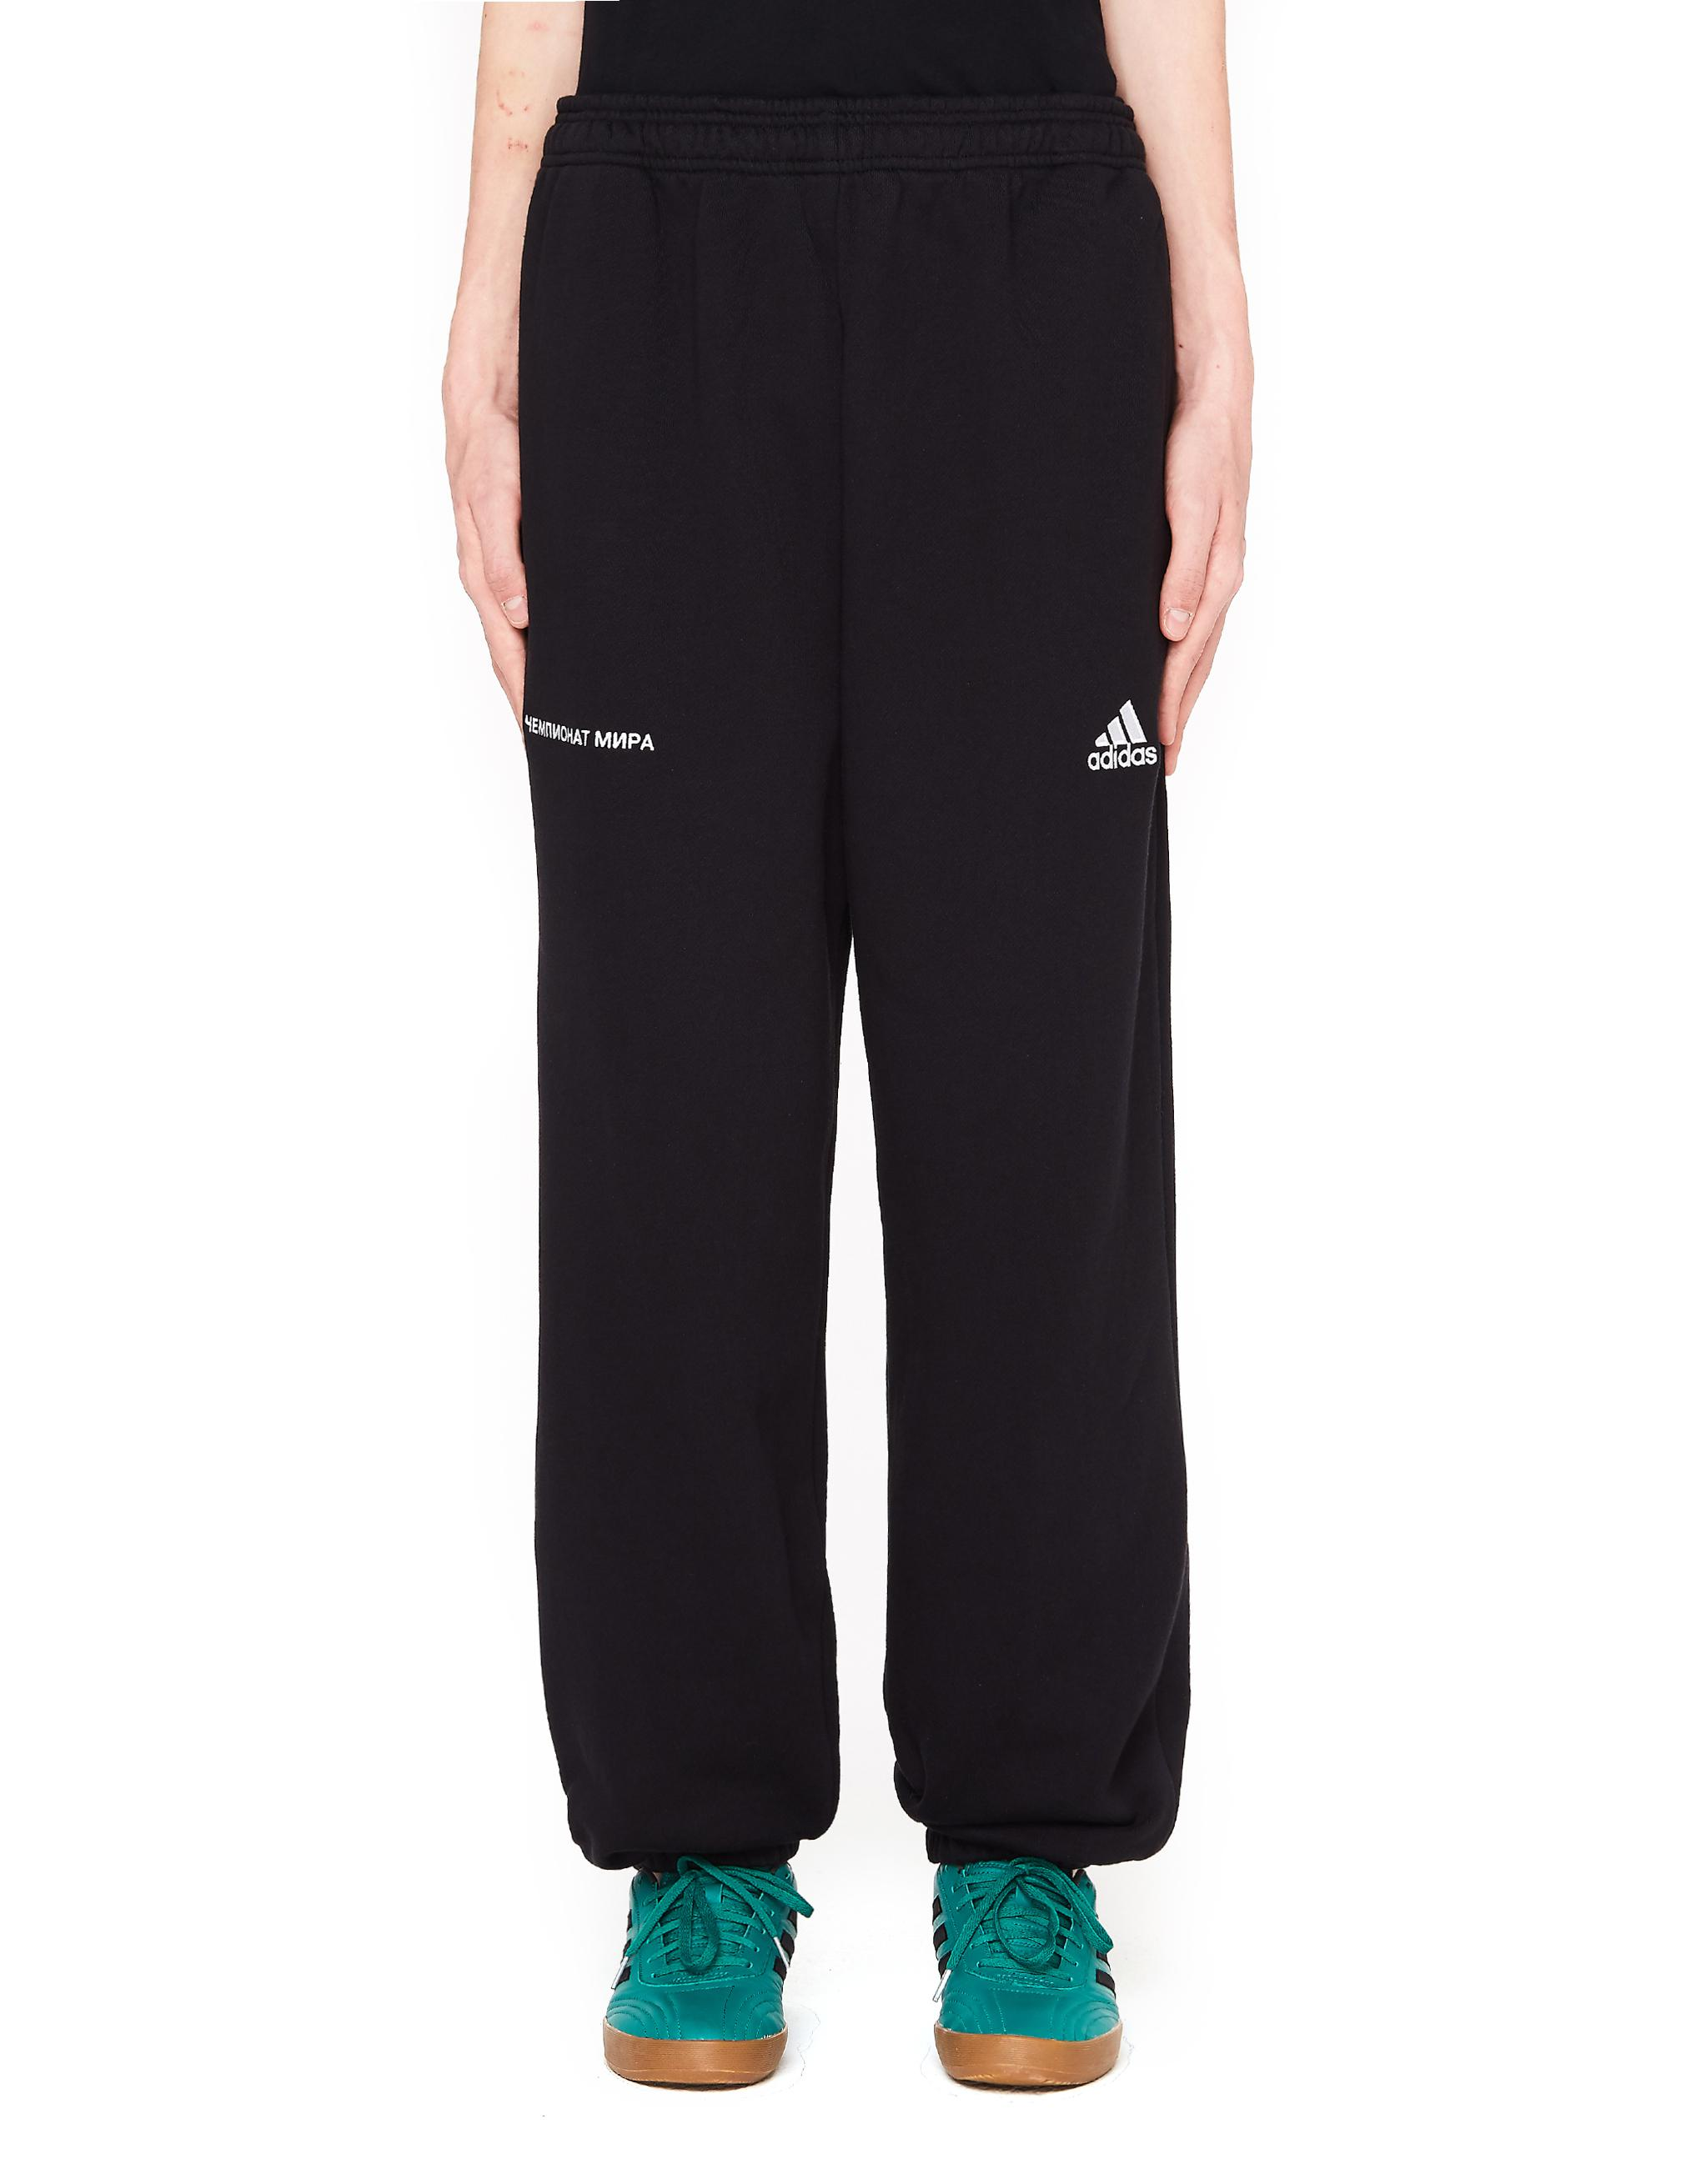 Black Adidas Cotton Gosha For Rubchinskiy Men Sweatpants UVzqSpM